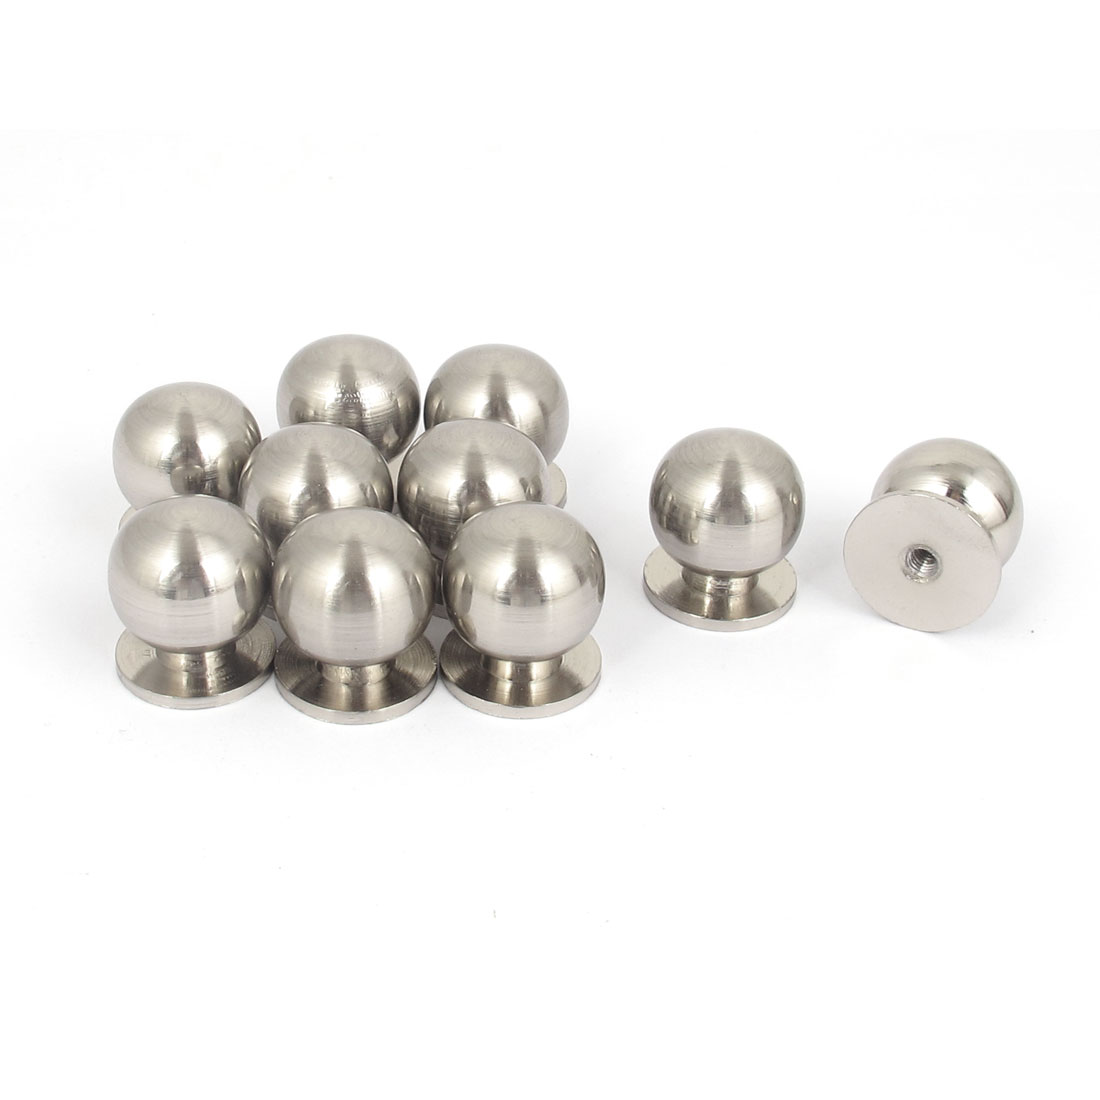 10Pcs 19mm Dia Metal Ball Shape Cabinet Drawer Door Handle Pull Knob Silver Tone